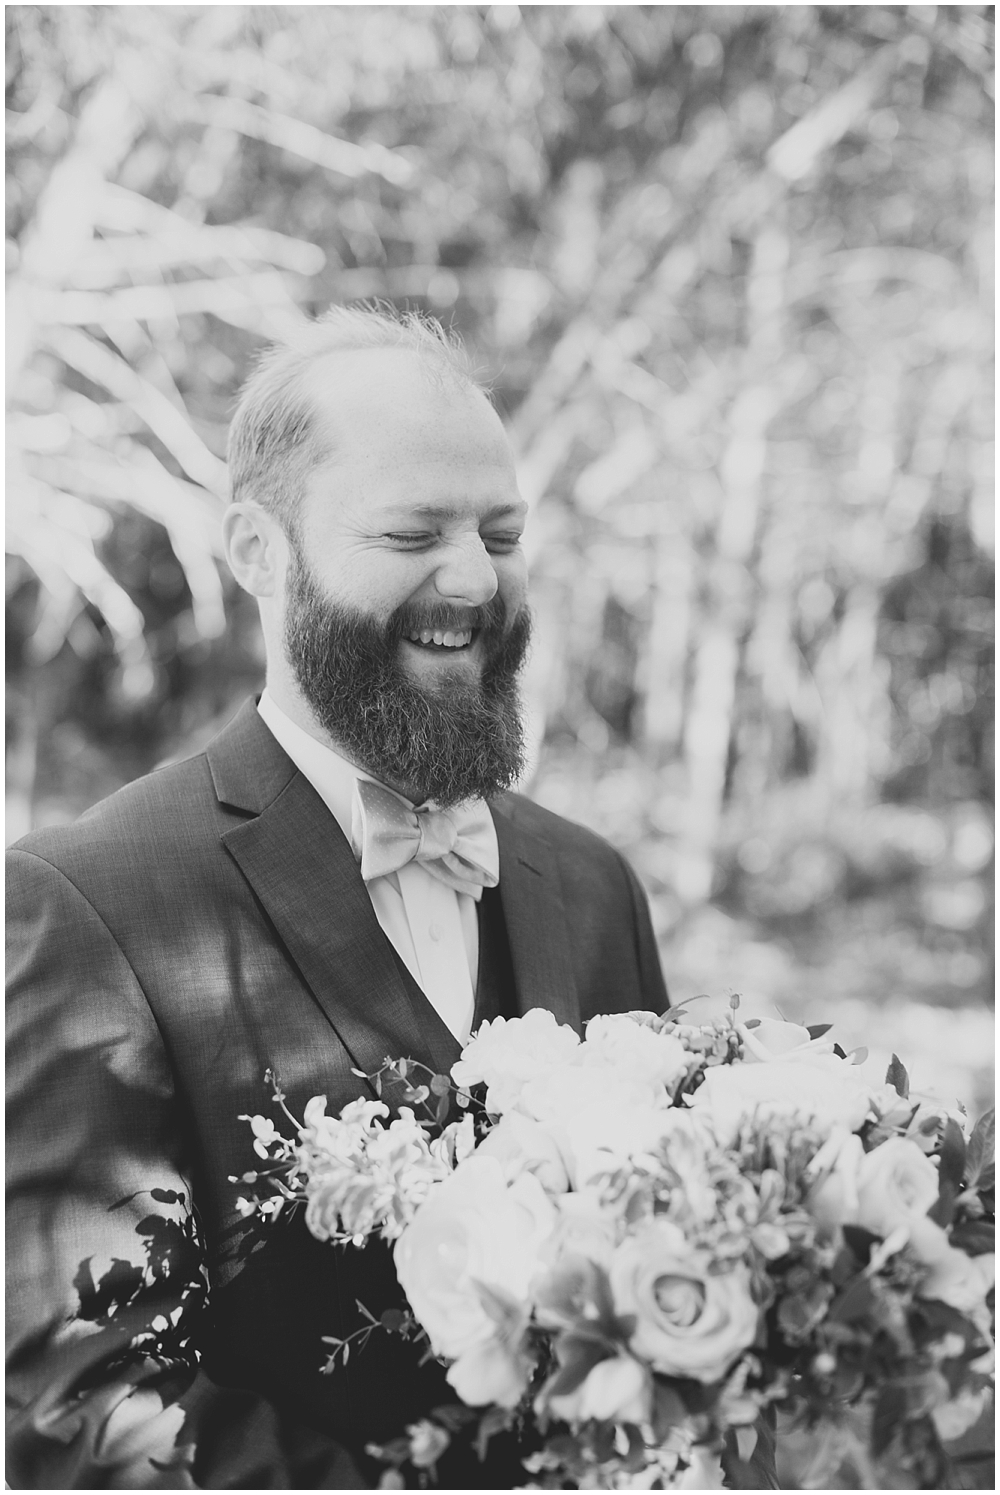 PattengalePhotography_StLouis_Wedding_Photographer_Boho_Hipster_Urban_Style_StCharles_Missouri_BullRunWinery_Charlottesville_Ashley&Sawyer_0038.jpg